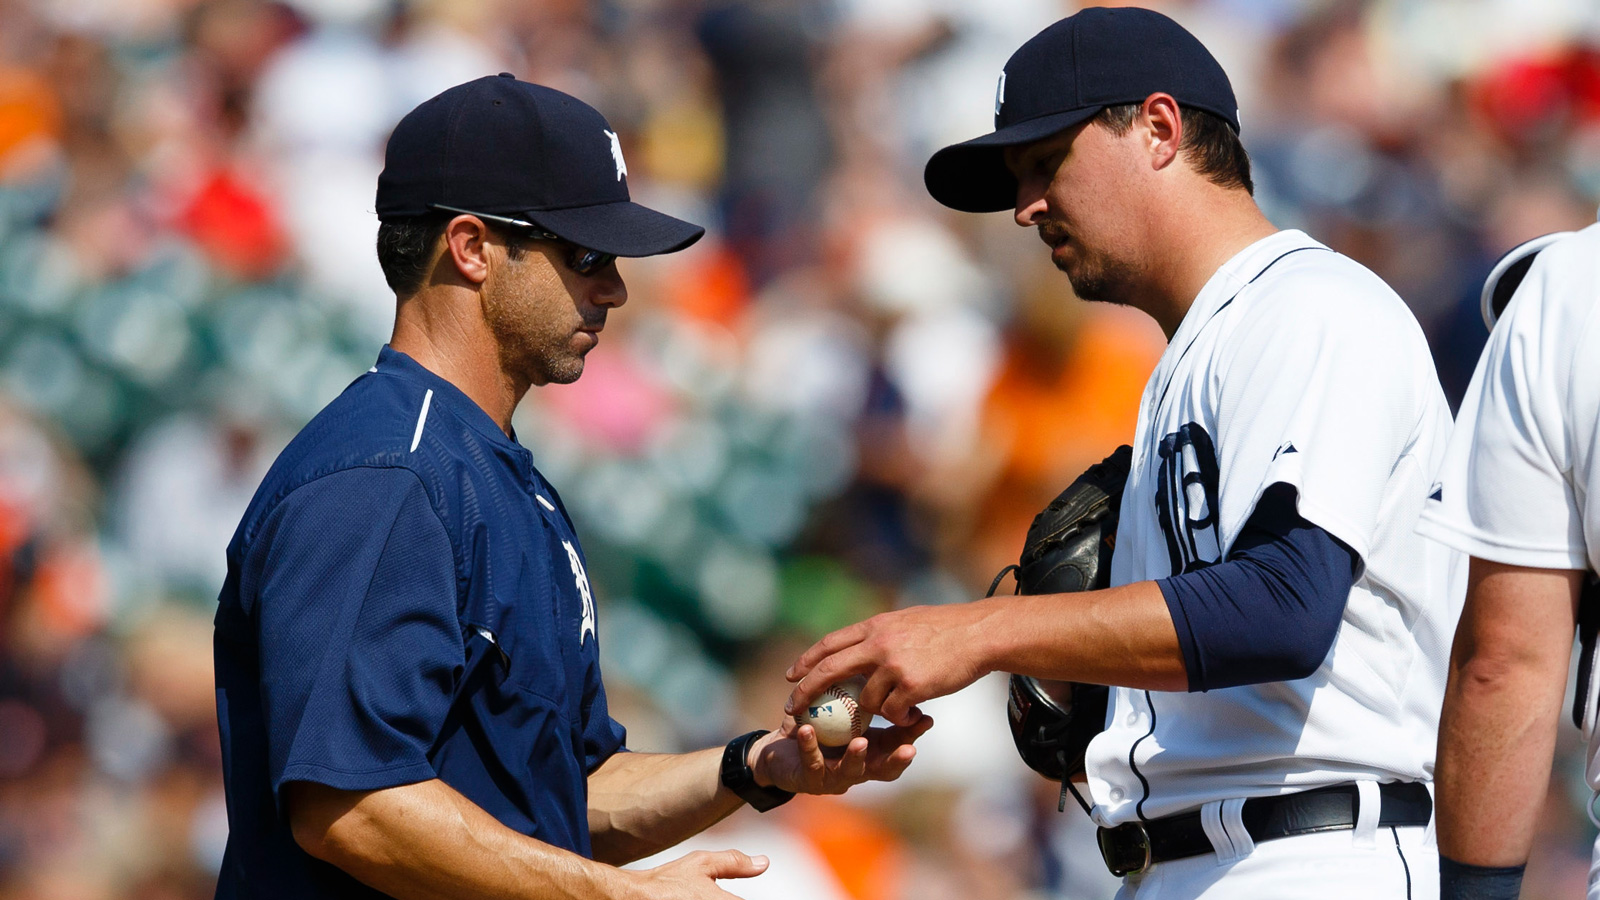 Tigers running out of time after third straight loss